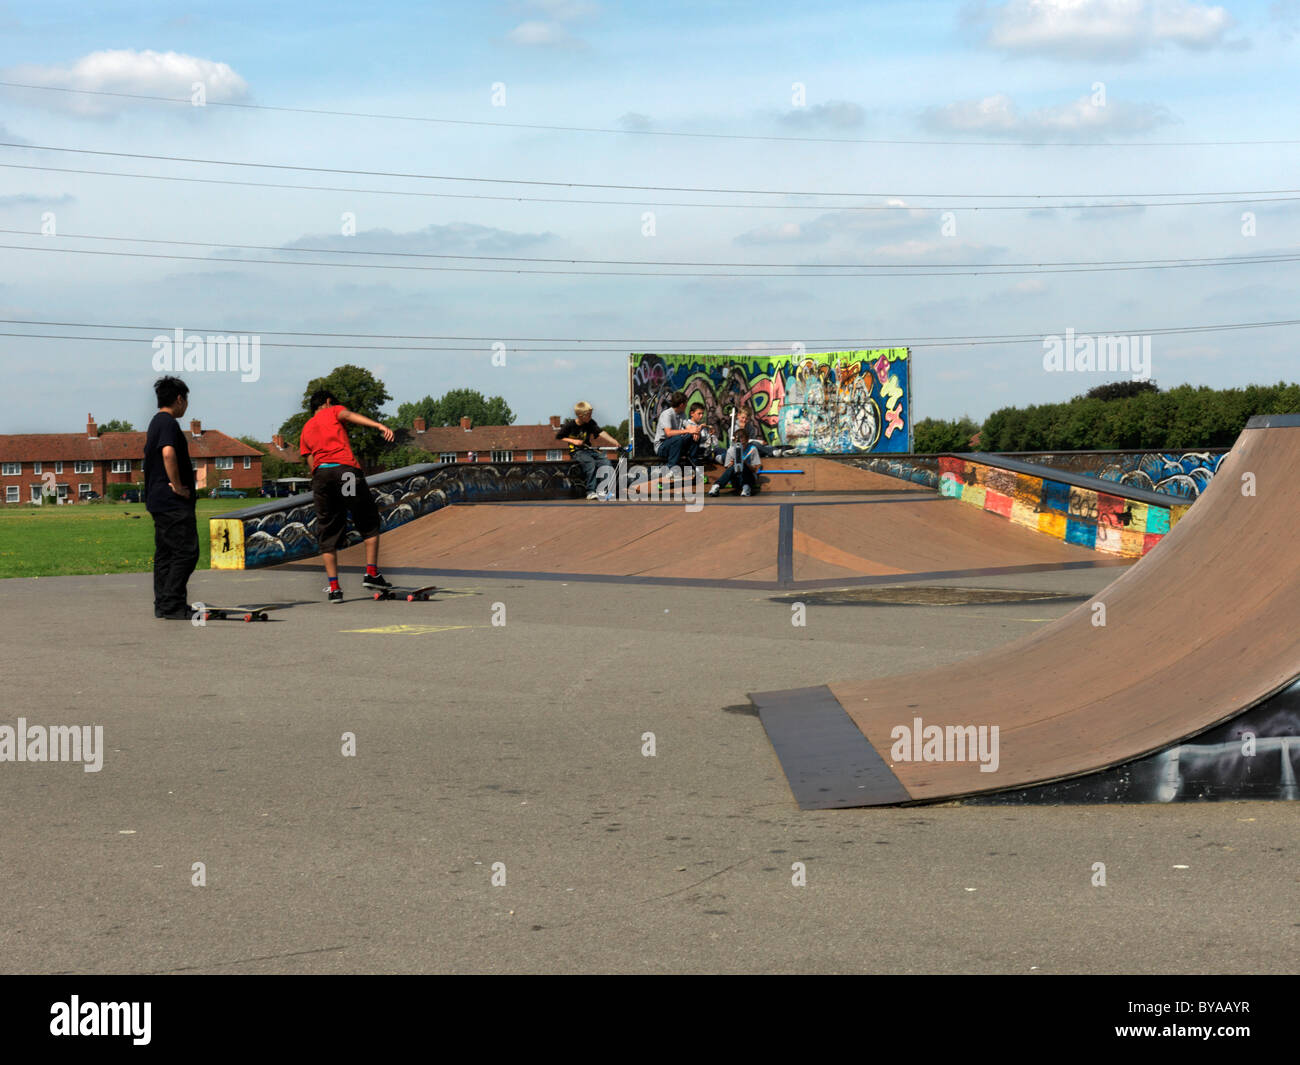 Rosehill Carshalton Surrey England Boys At Skateboard Park Graffiti On Skateboard Ramp - Stock Image